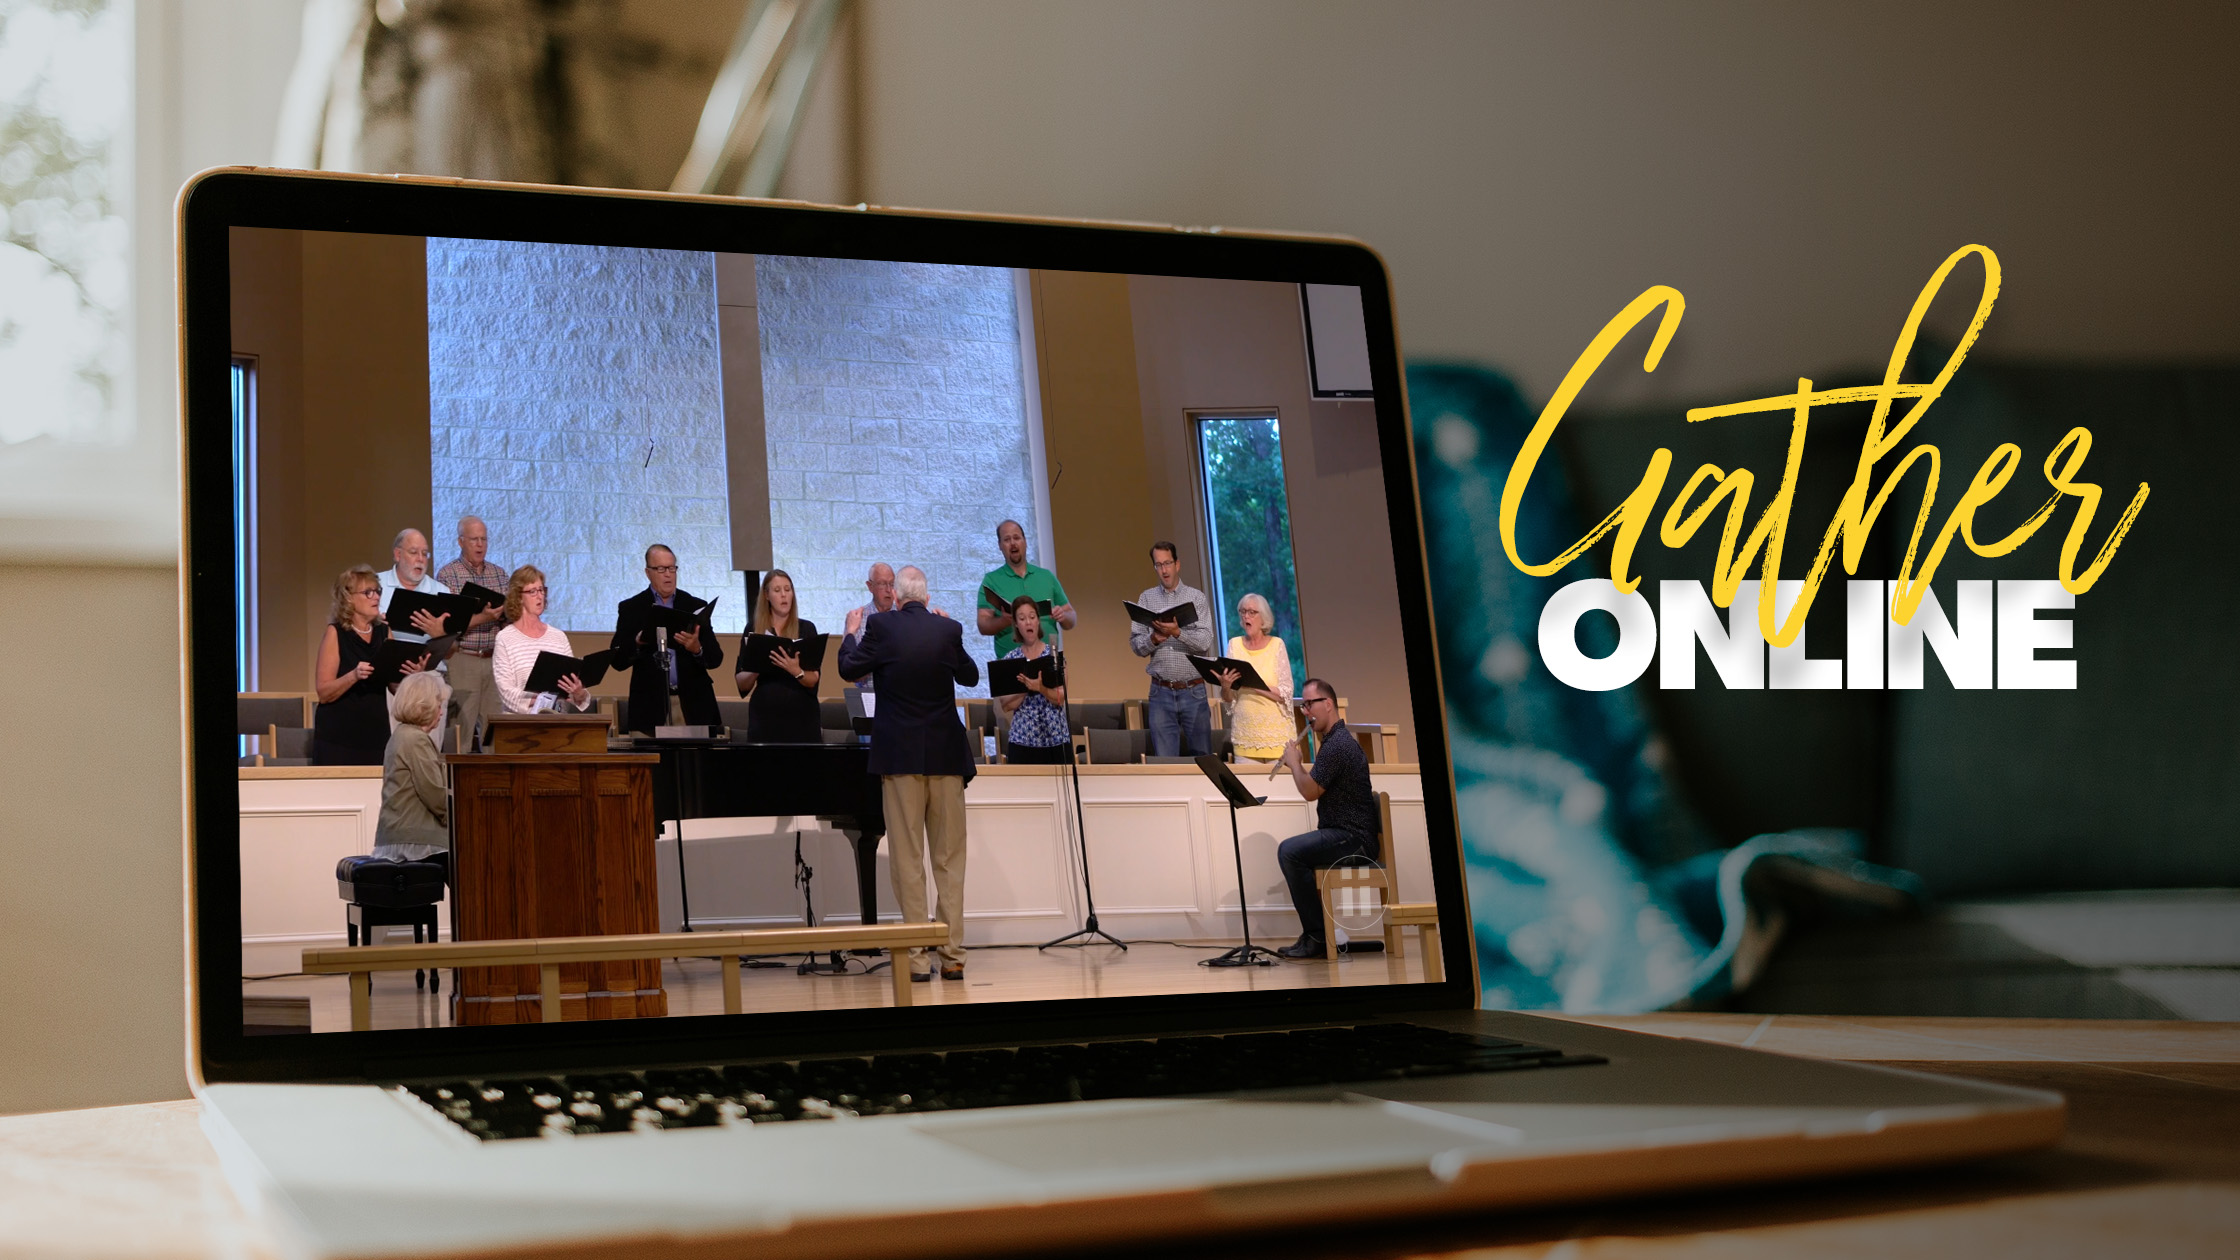 Christ Church Birmingham Online Traditional Worship | October 11, 2020